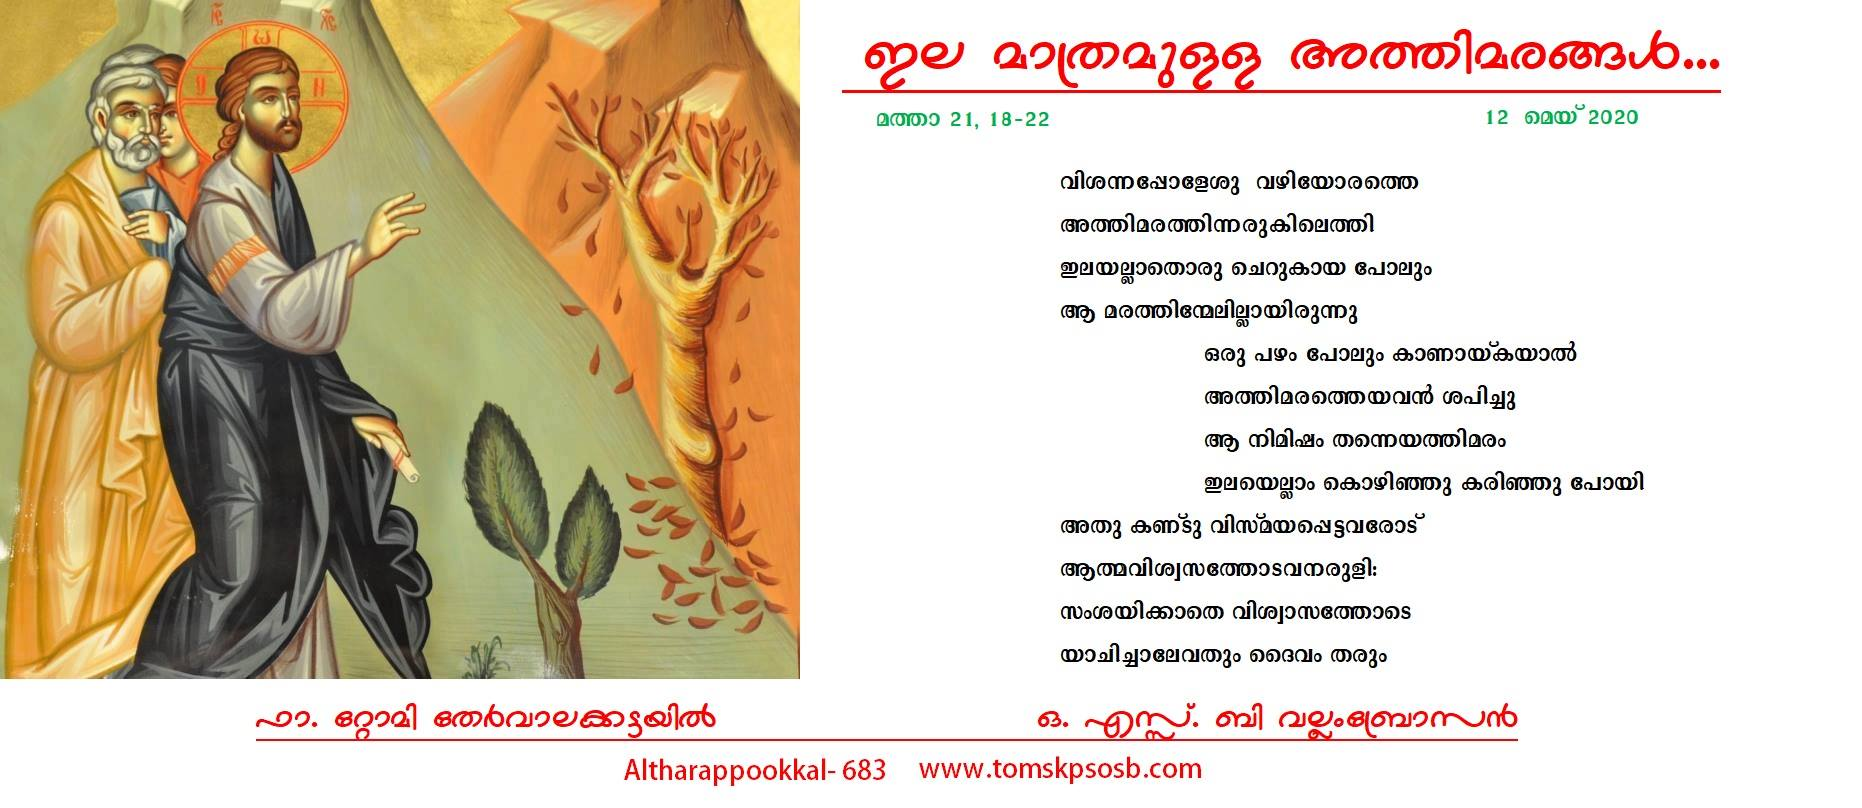 altharapookkal-626 (8)